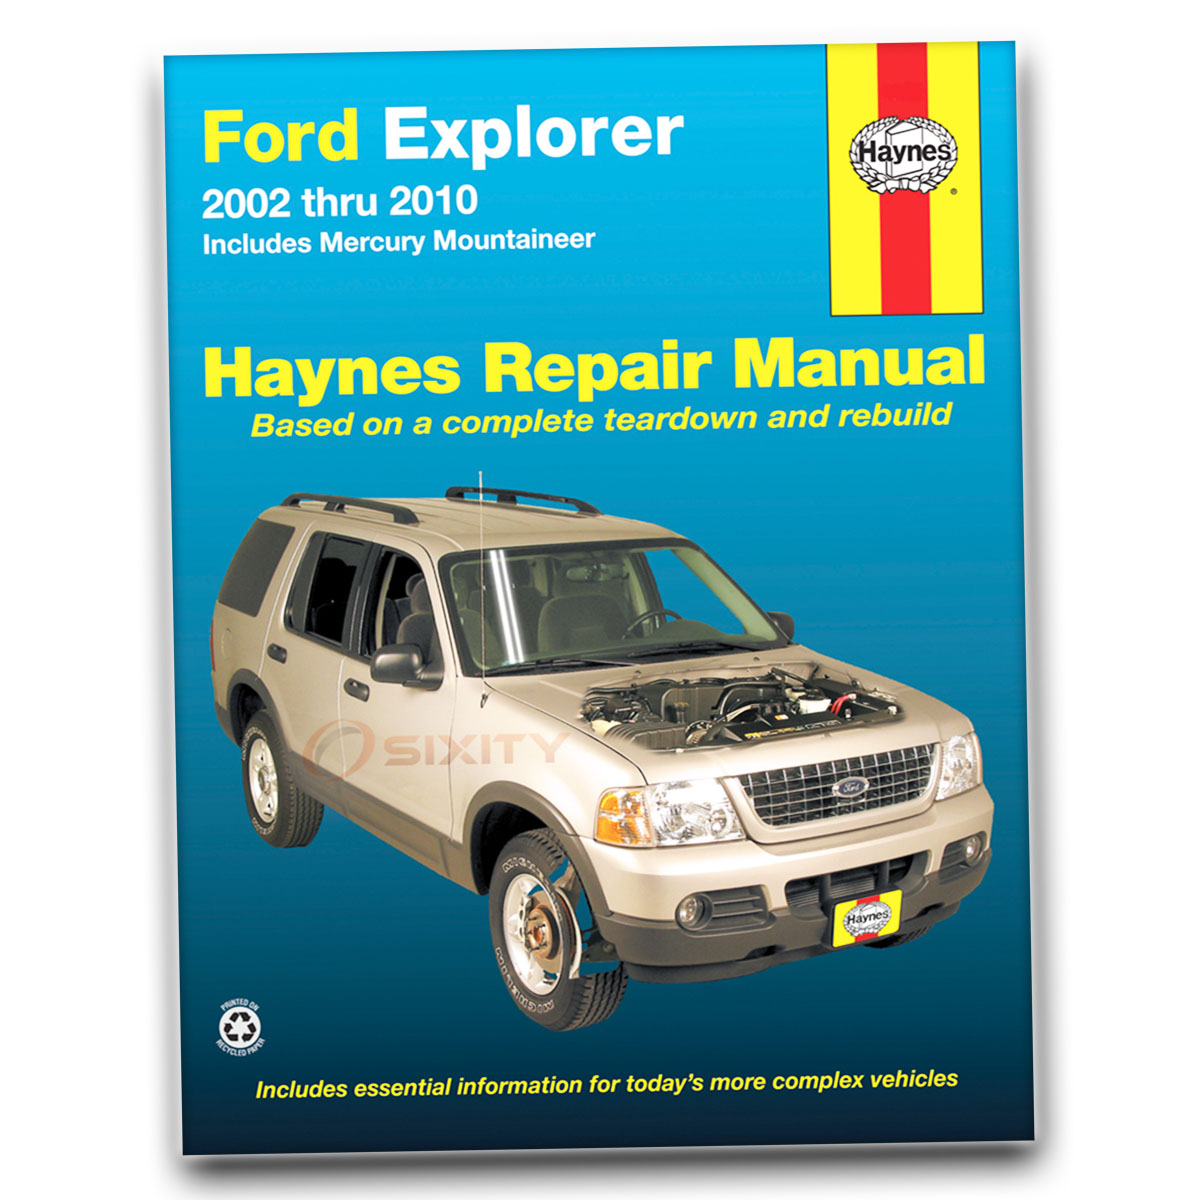 Ford Explorer Haynes Repair Manual Xlt Nbx Xls Postal Eddie Bauer Sport Gm